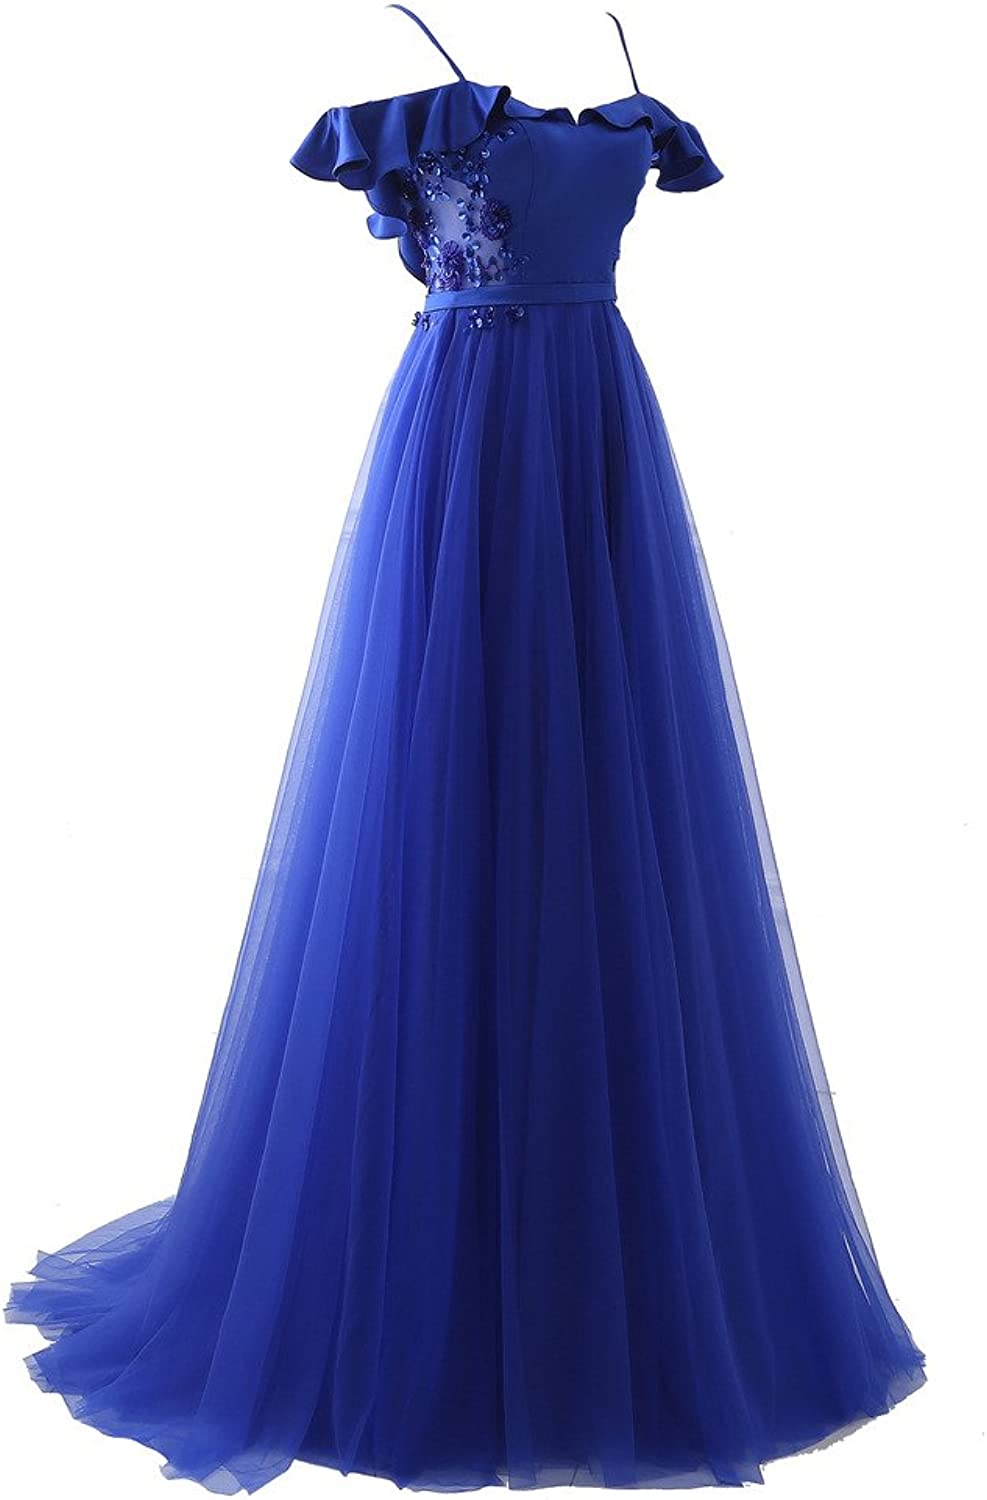 PuTao Women's Spaghetti Straps Sequis Party Prom Evening Gowns